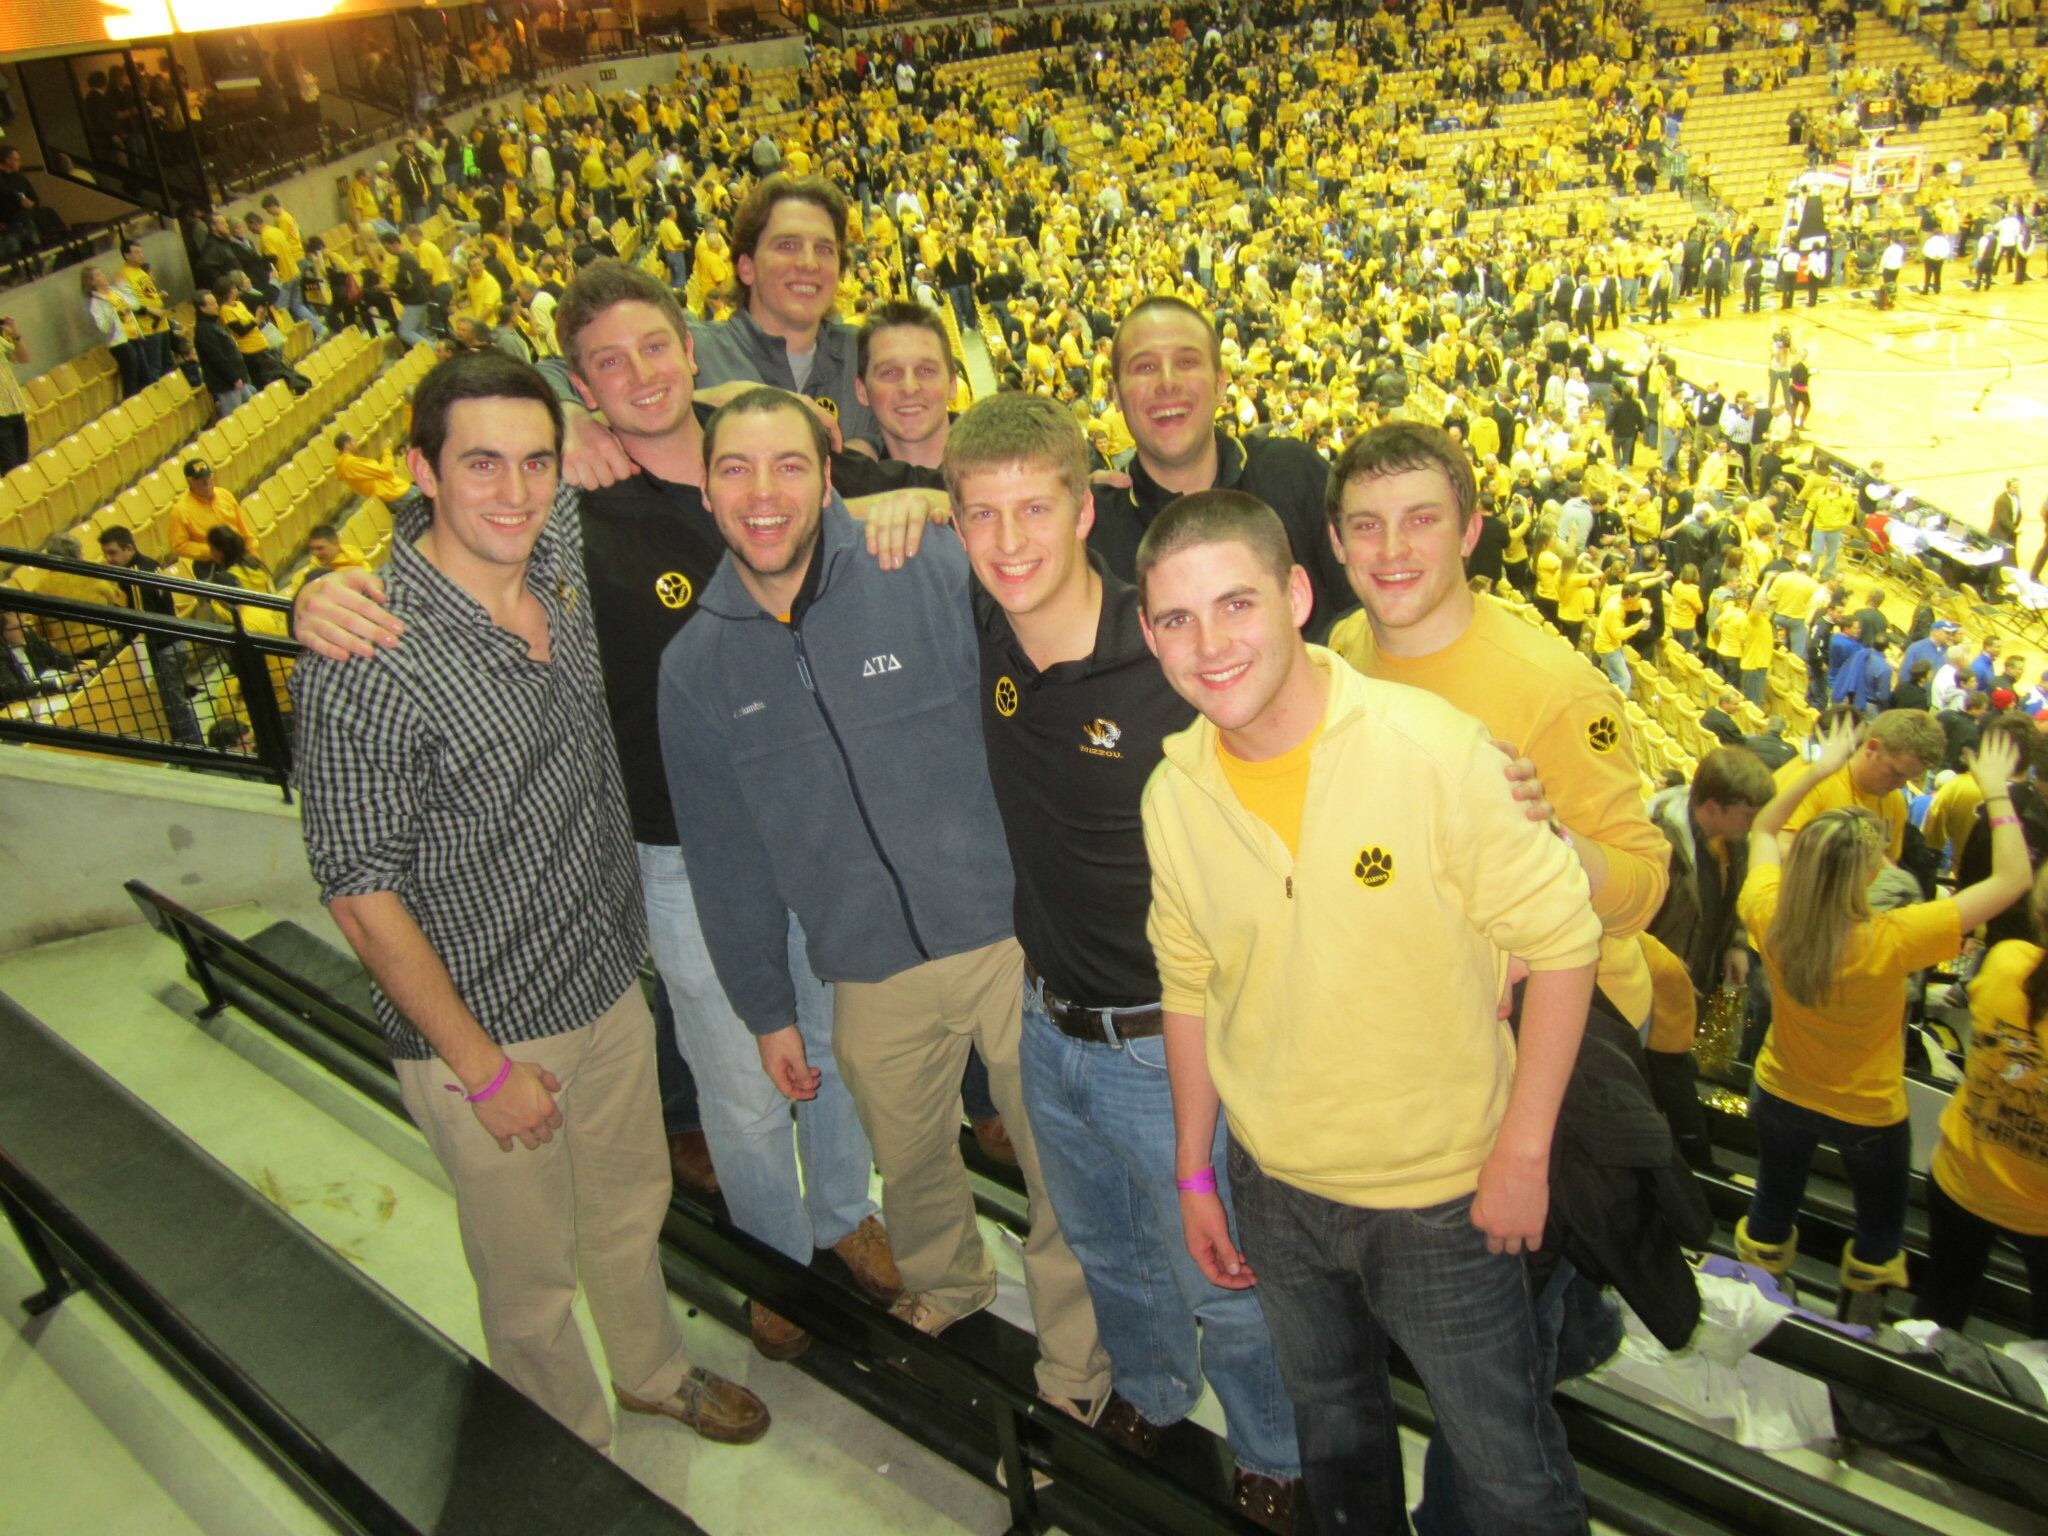 Picture of Fleming with friends at a Mizzou basketball game